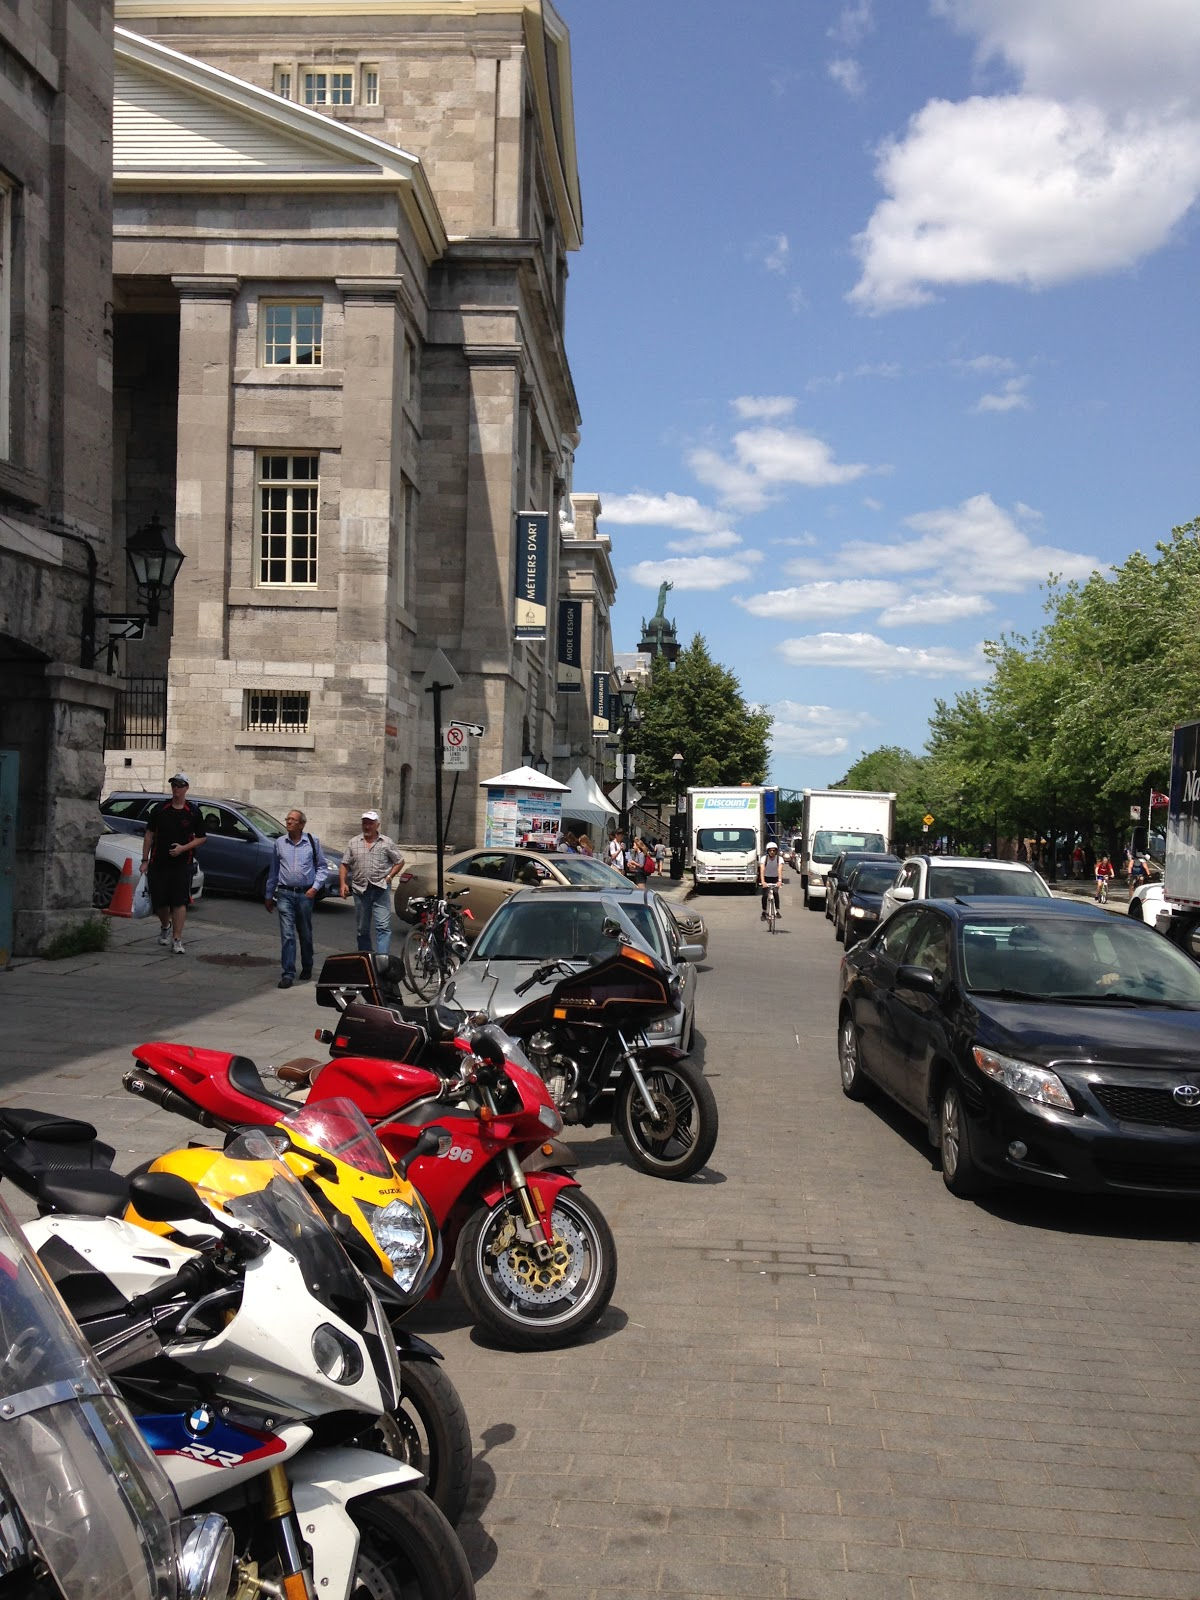 Tigho NYDucati: Oh Canada: To Montreal on Motorcycles